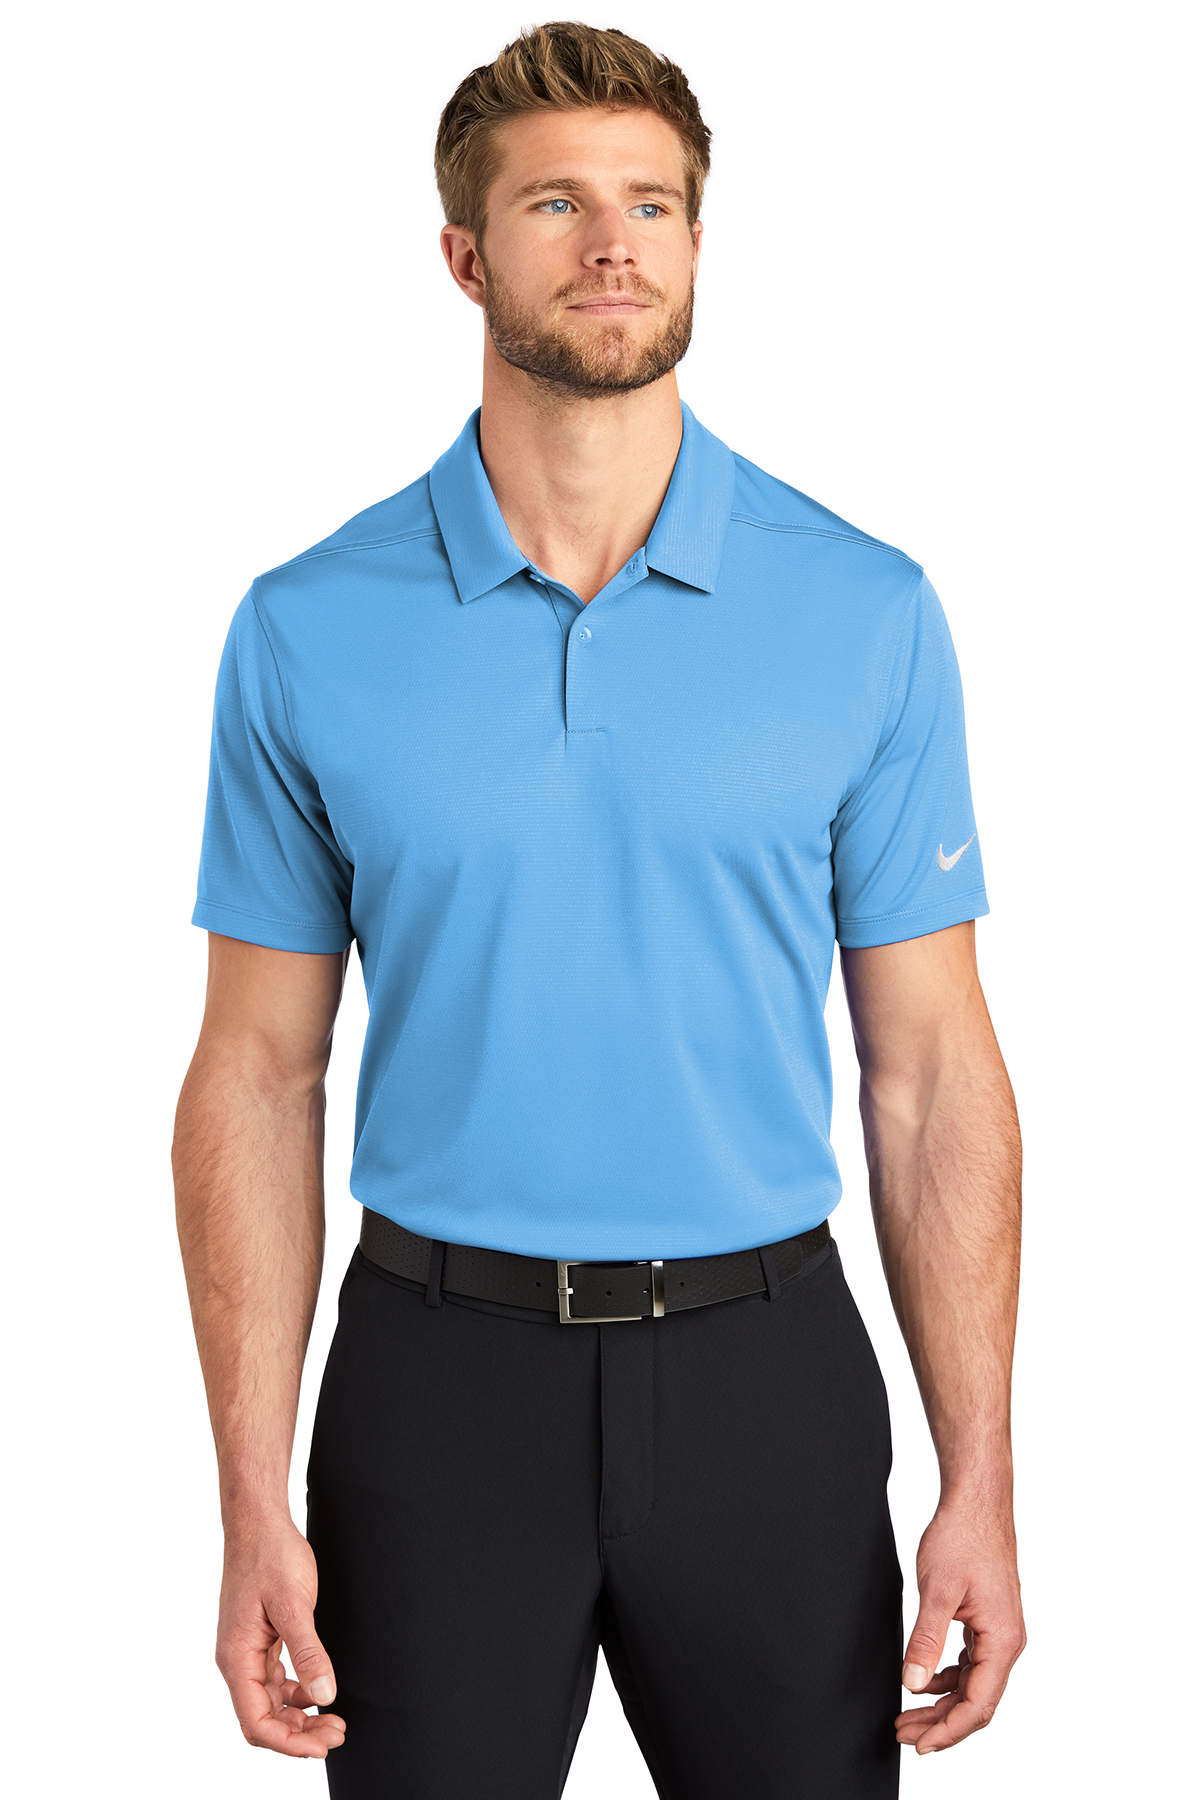 Nike Golf NKBV6042 - Dry Essential Solid Polo